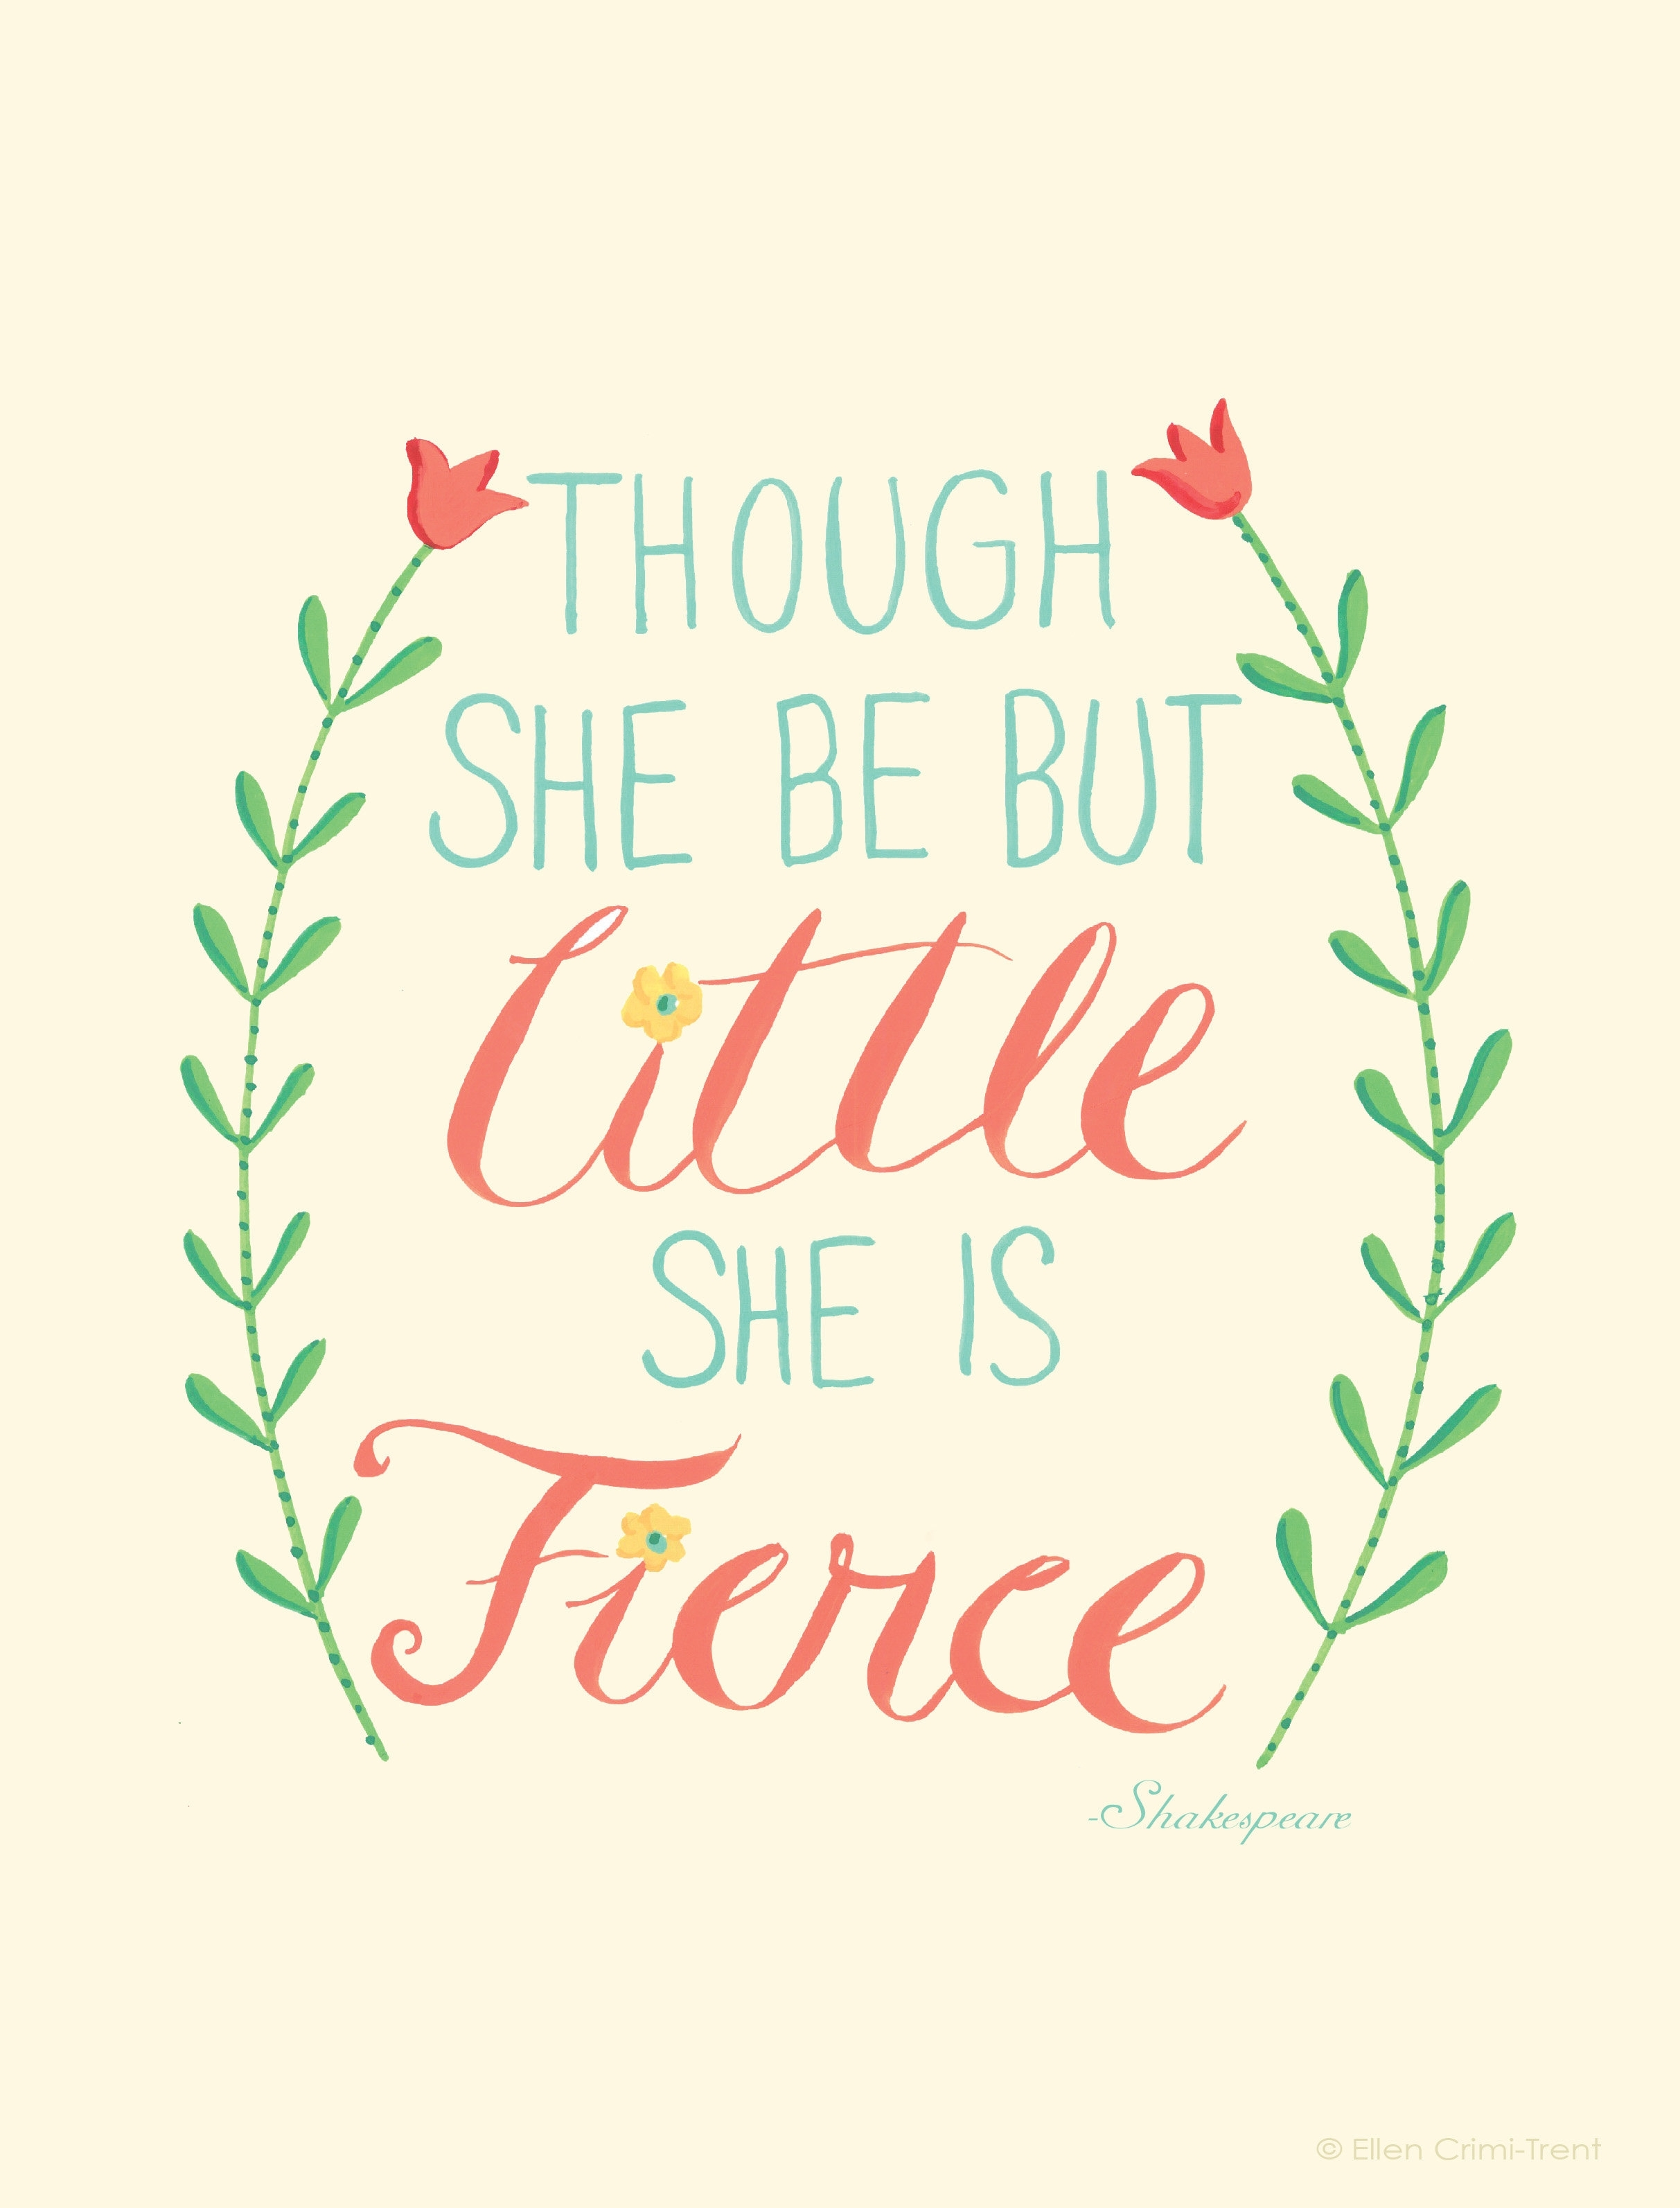 Ellen Crimi Trent 'though She Be But Little She Is Fierce' Textual Intended For Though She Be But Little She Is Fierce Wall Art (View 19 of 20)